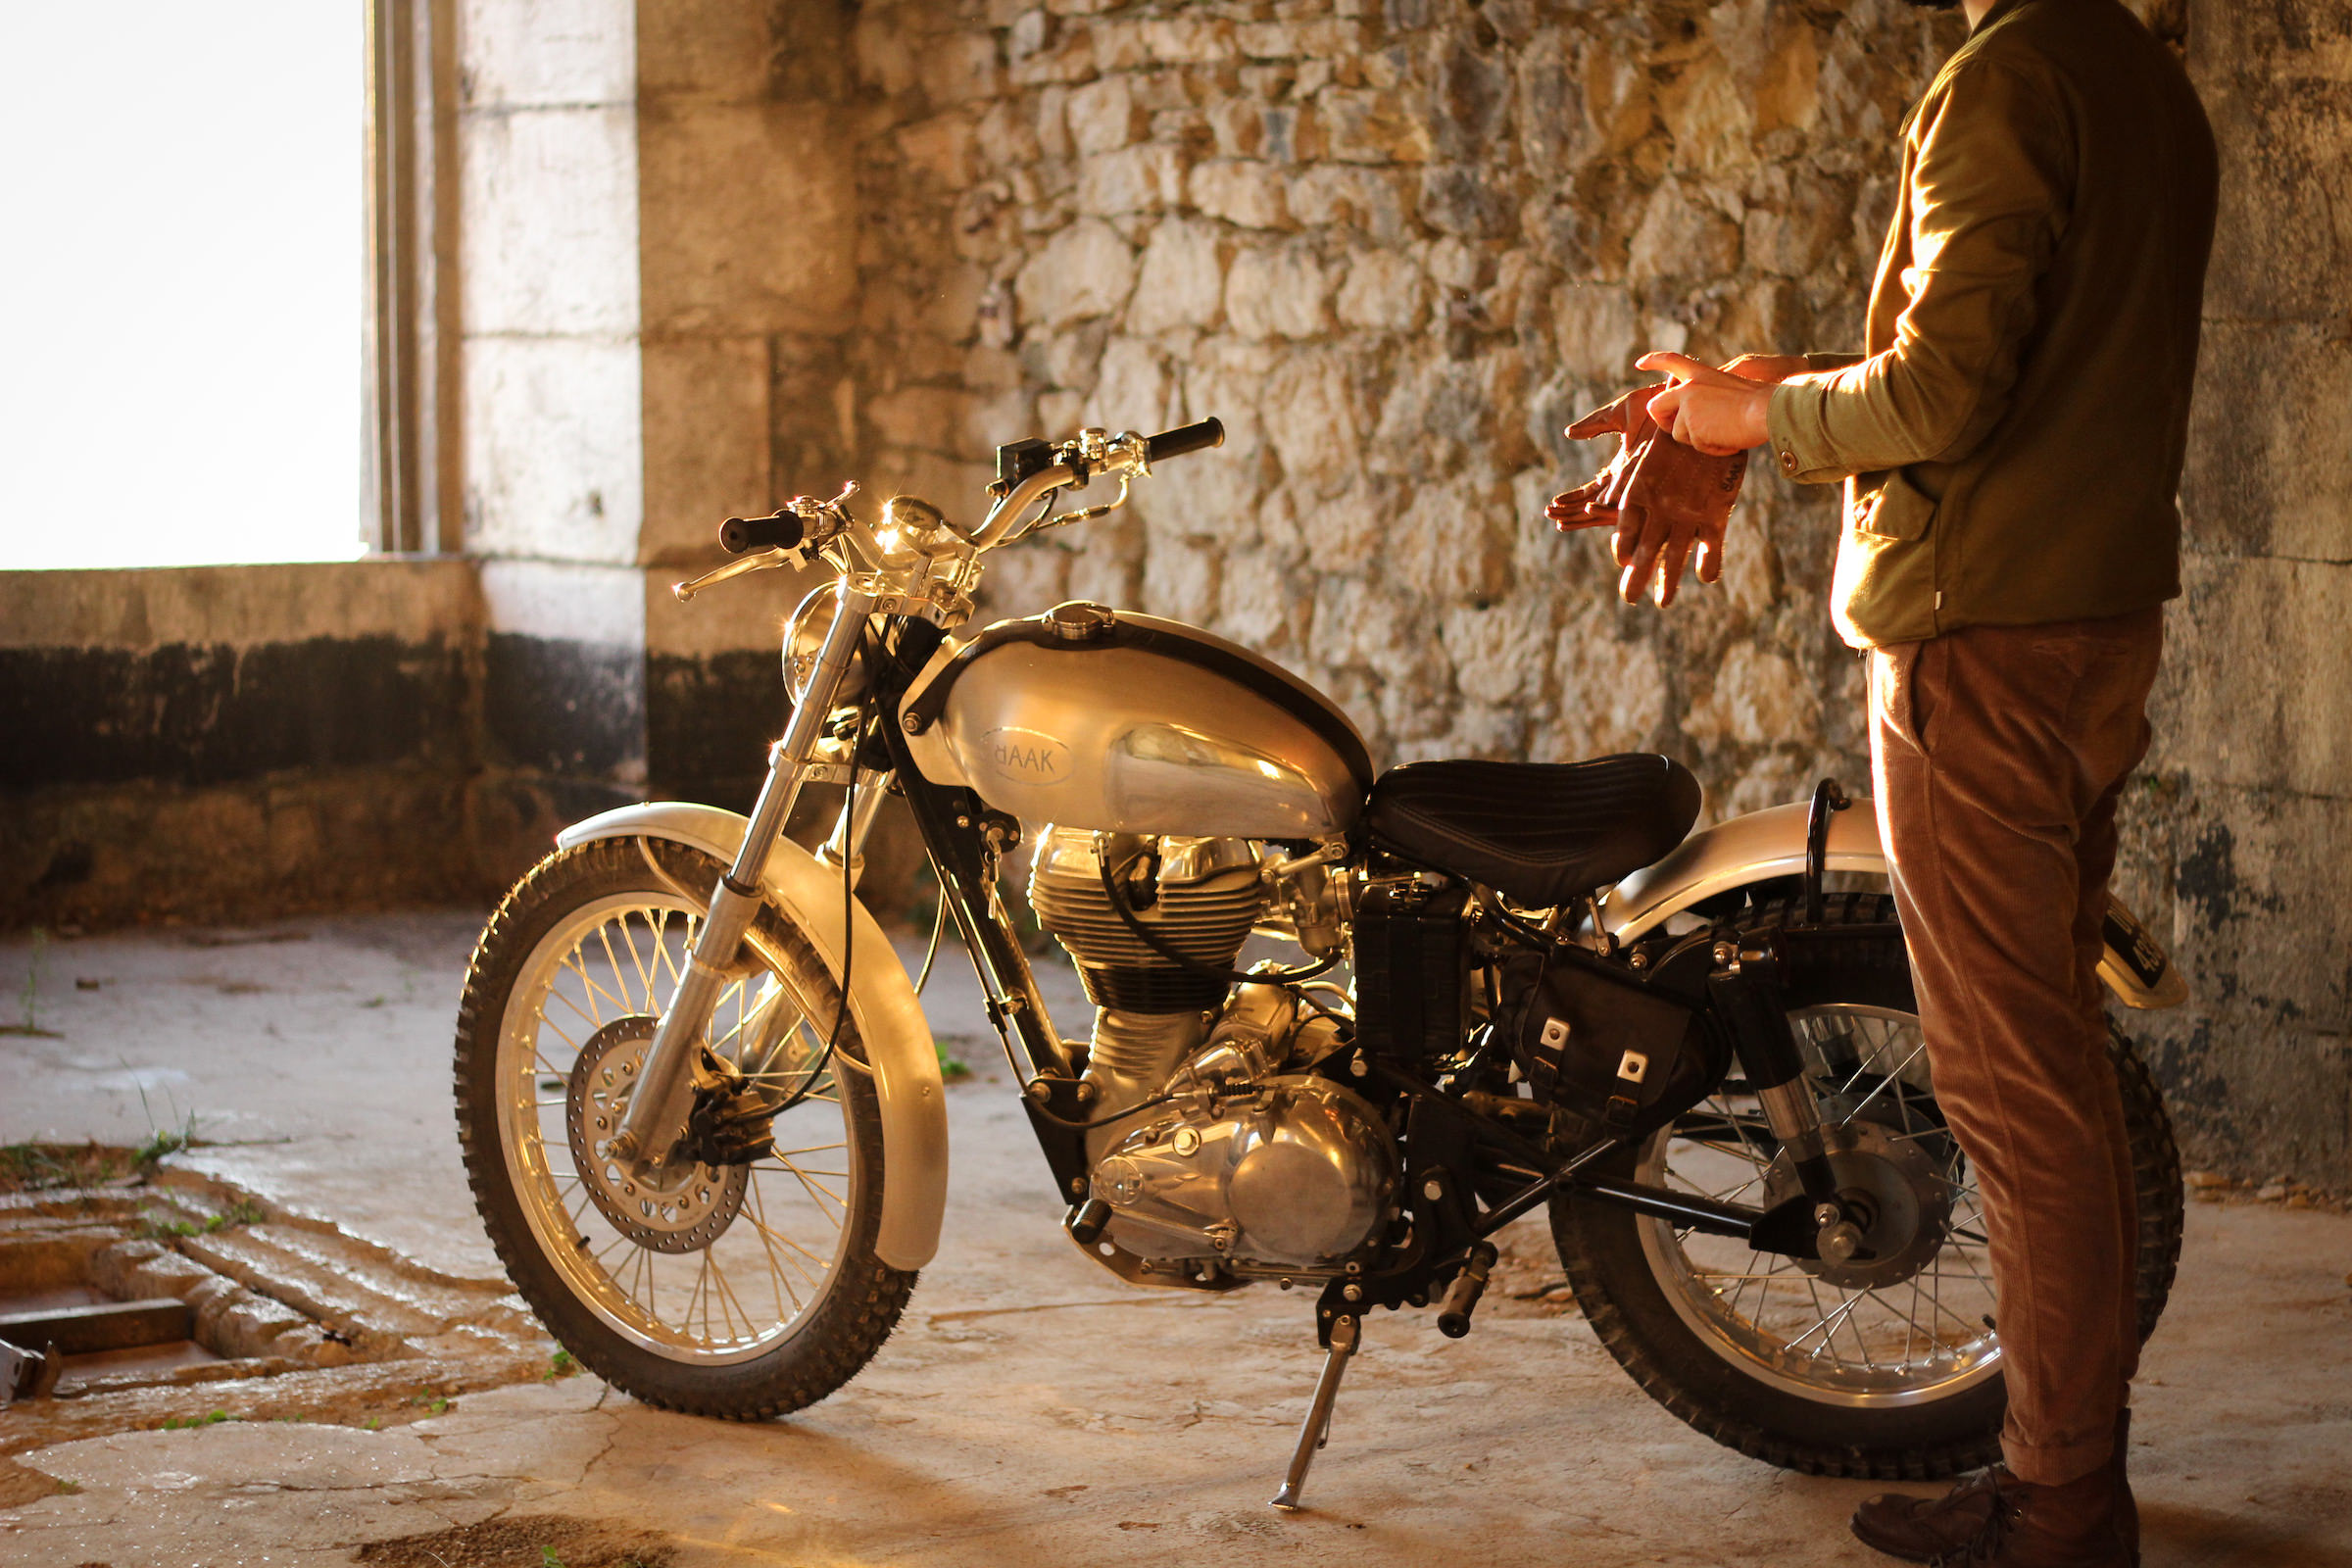 Royal Enfield Classic 500 Scrambler - By BAAK Motocyclettes